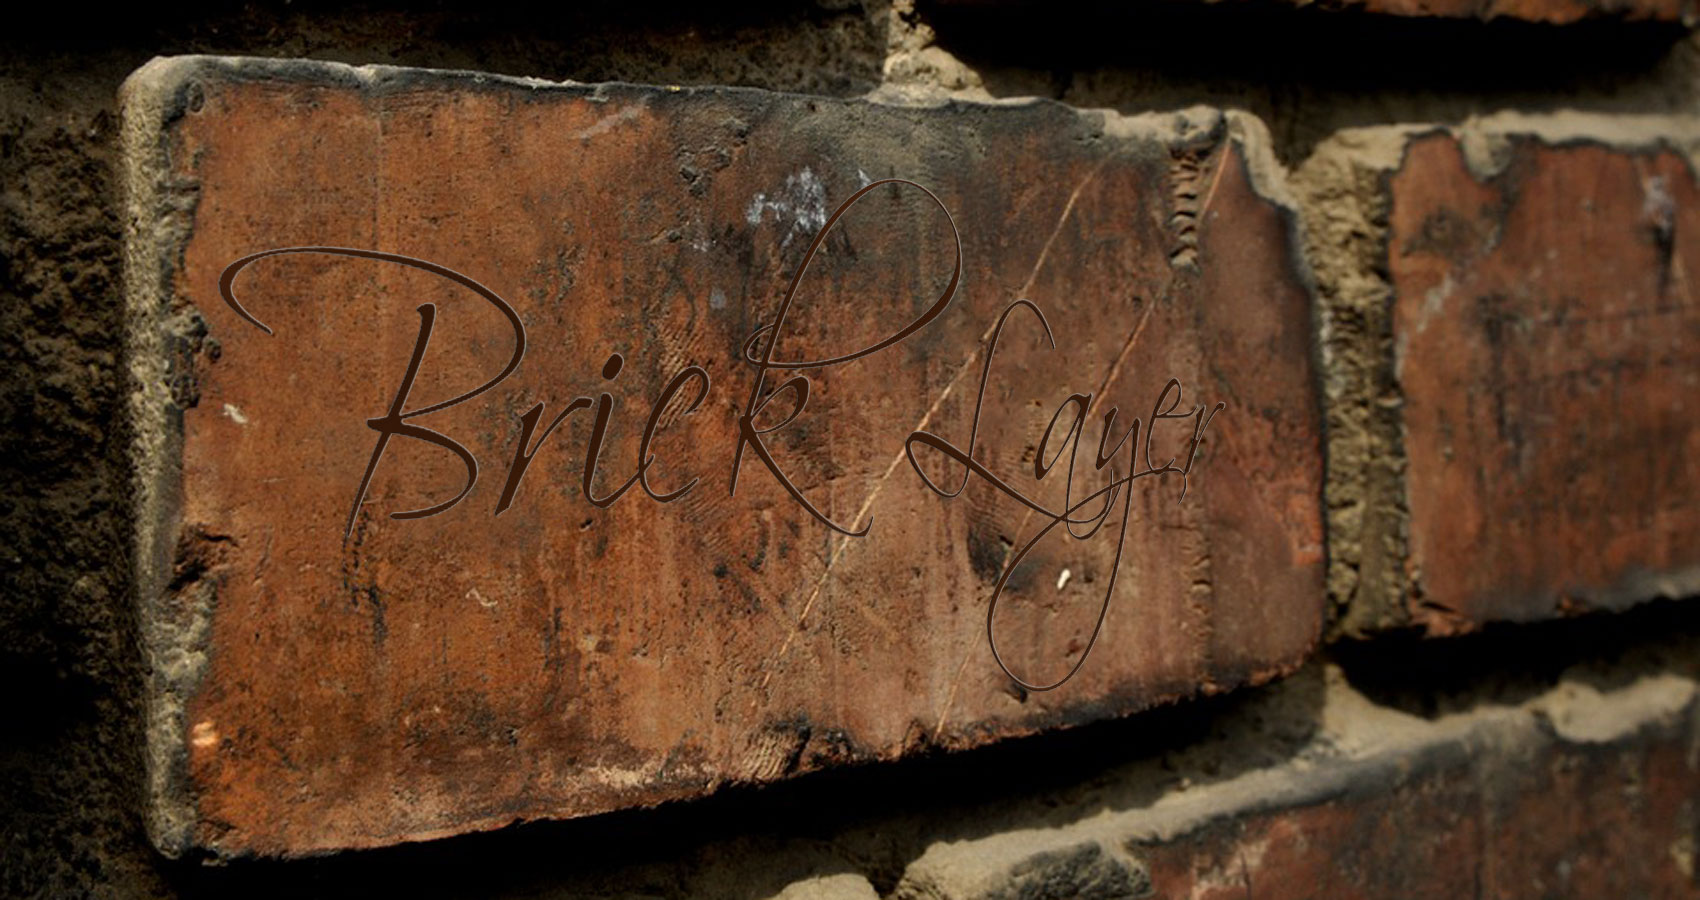 Brick Layer written by theRavensproctor at Spillwords.com